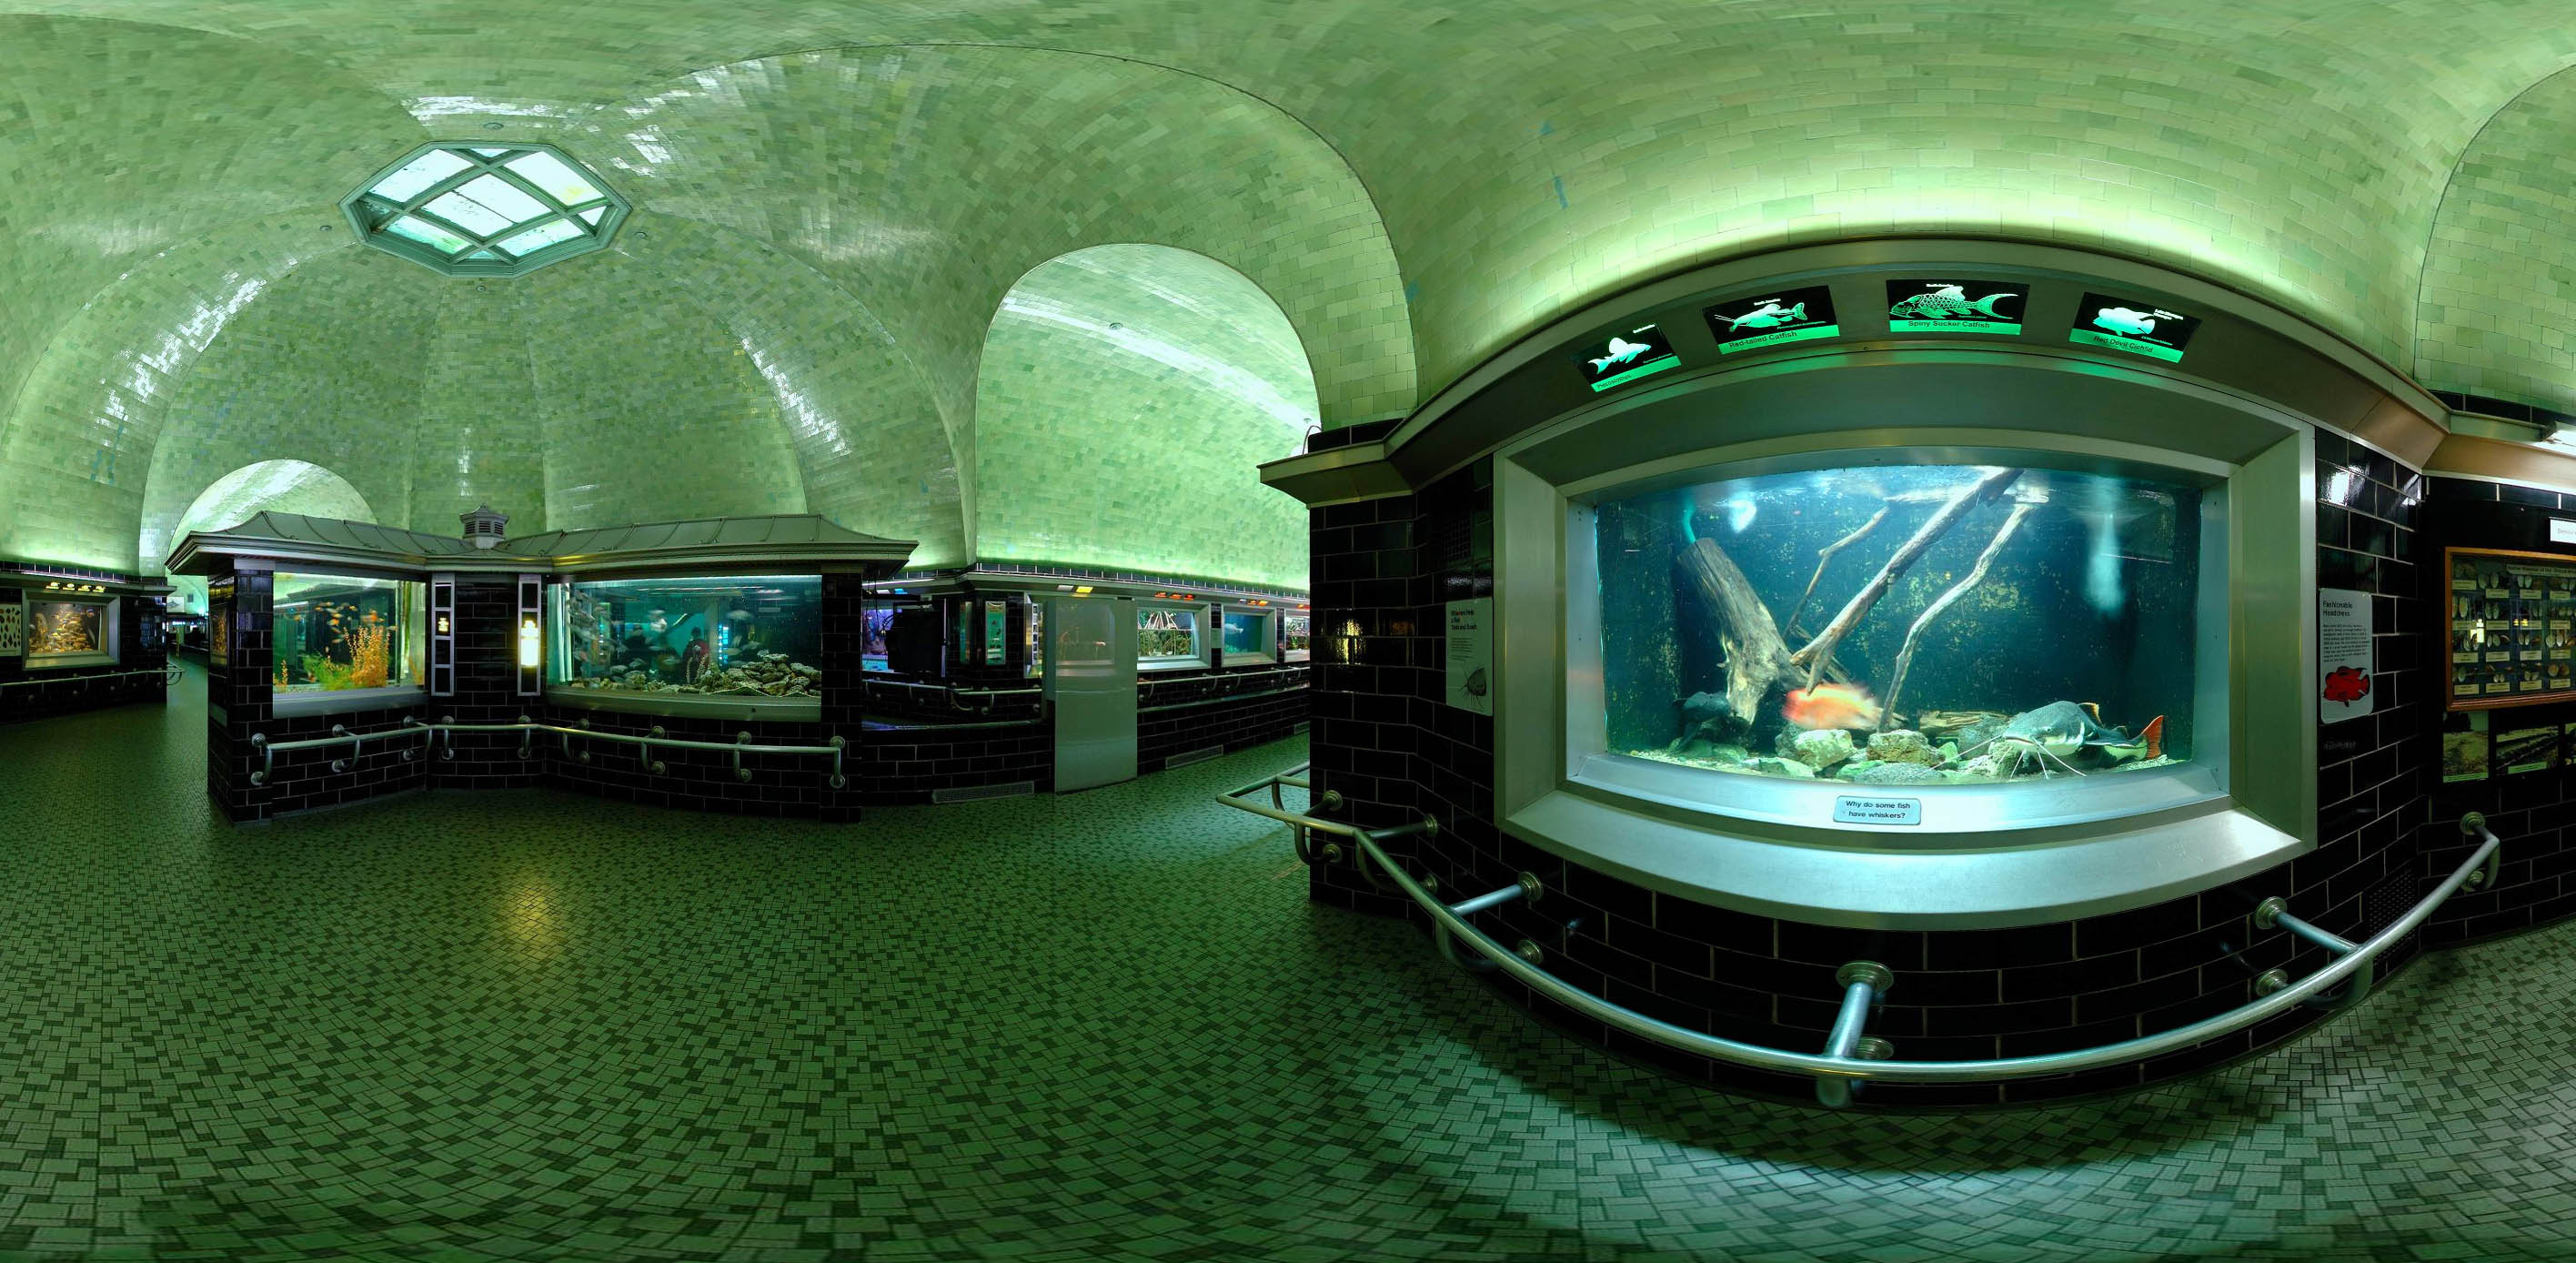 The aquarium's tanks and its green glass tile, designed by Albert Kahn